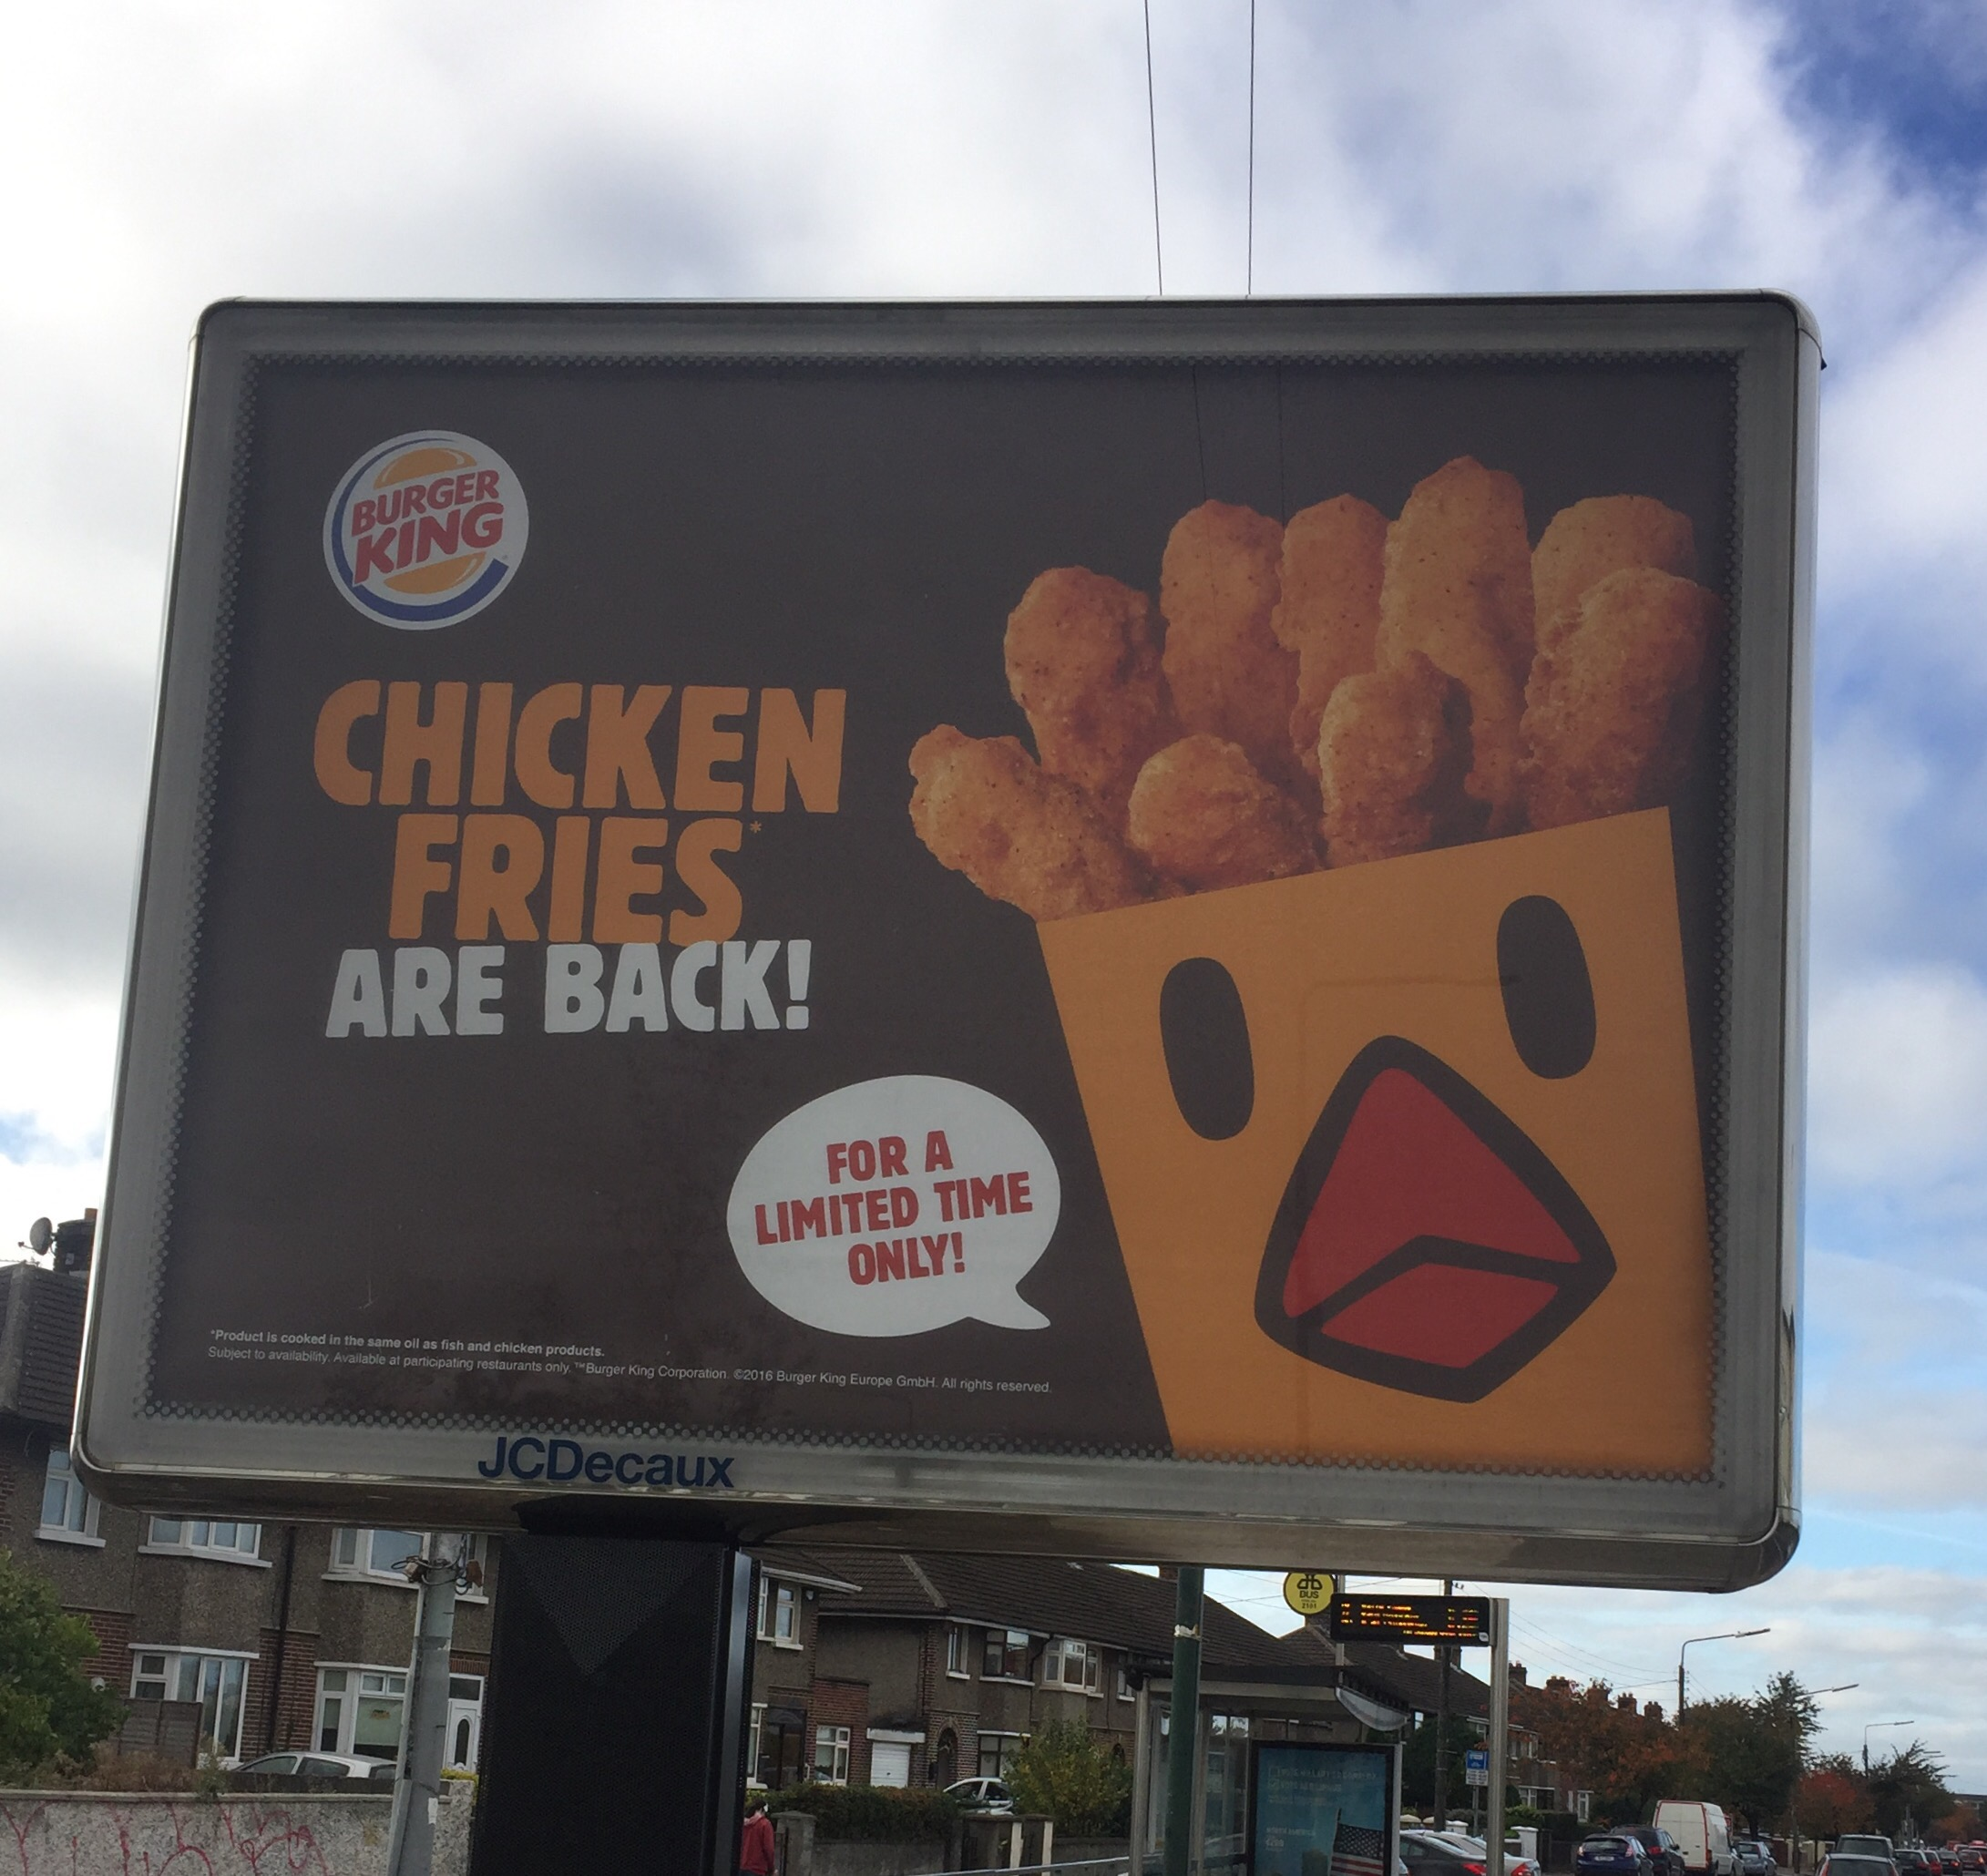 Ana Maria Polvorosa Follando burger king - chicken fries are back - smart media